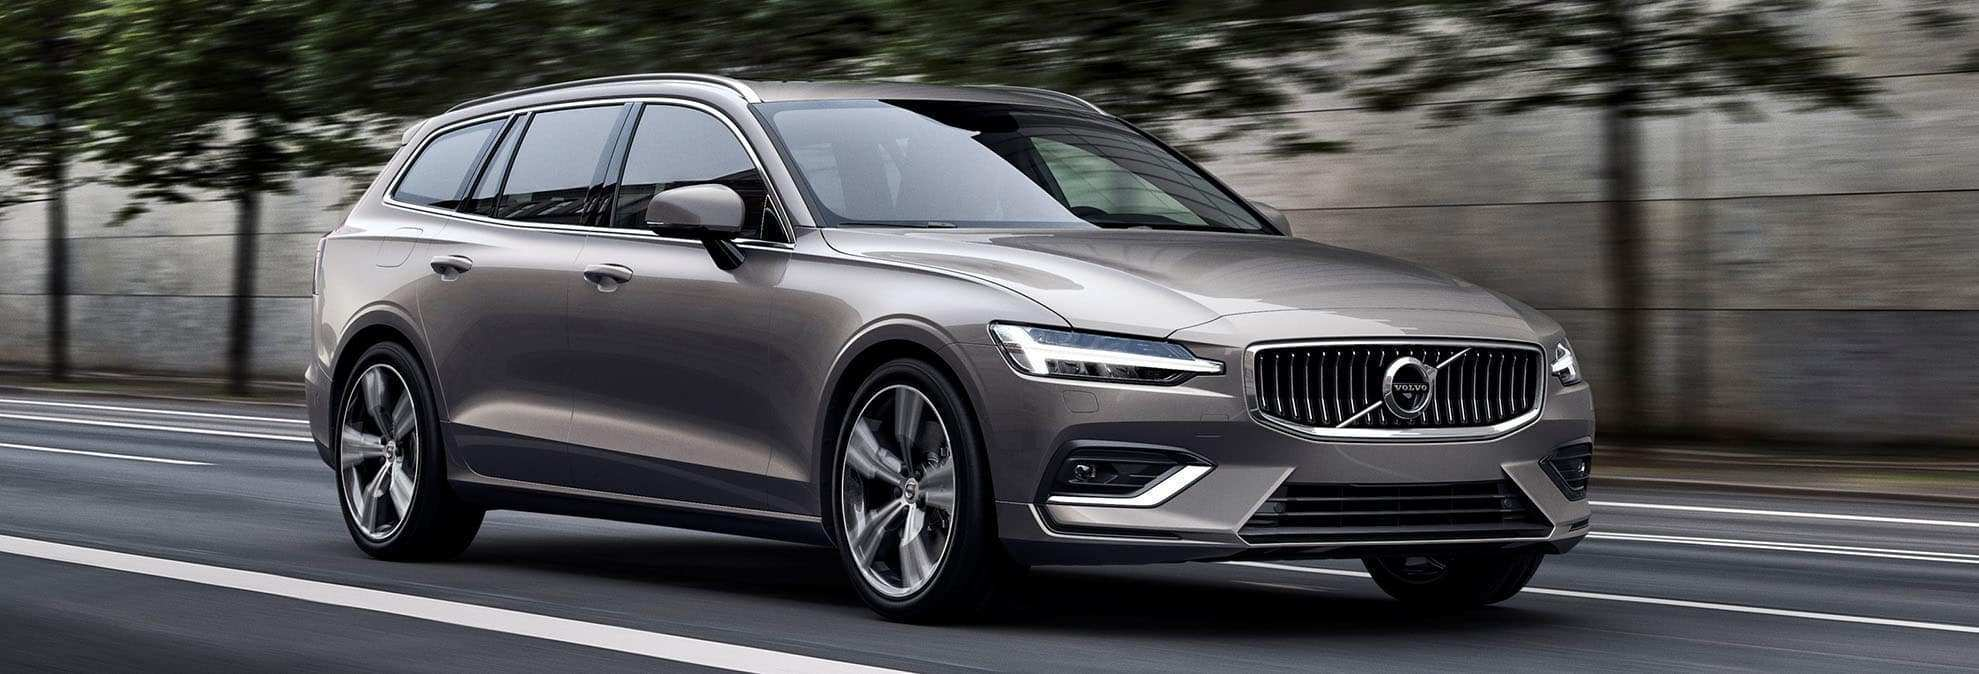 70 Best Review Volvo 2019 Station Wagon Photos for Volvo 2019 Station Wagon